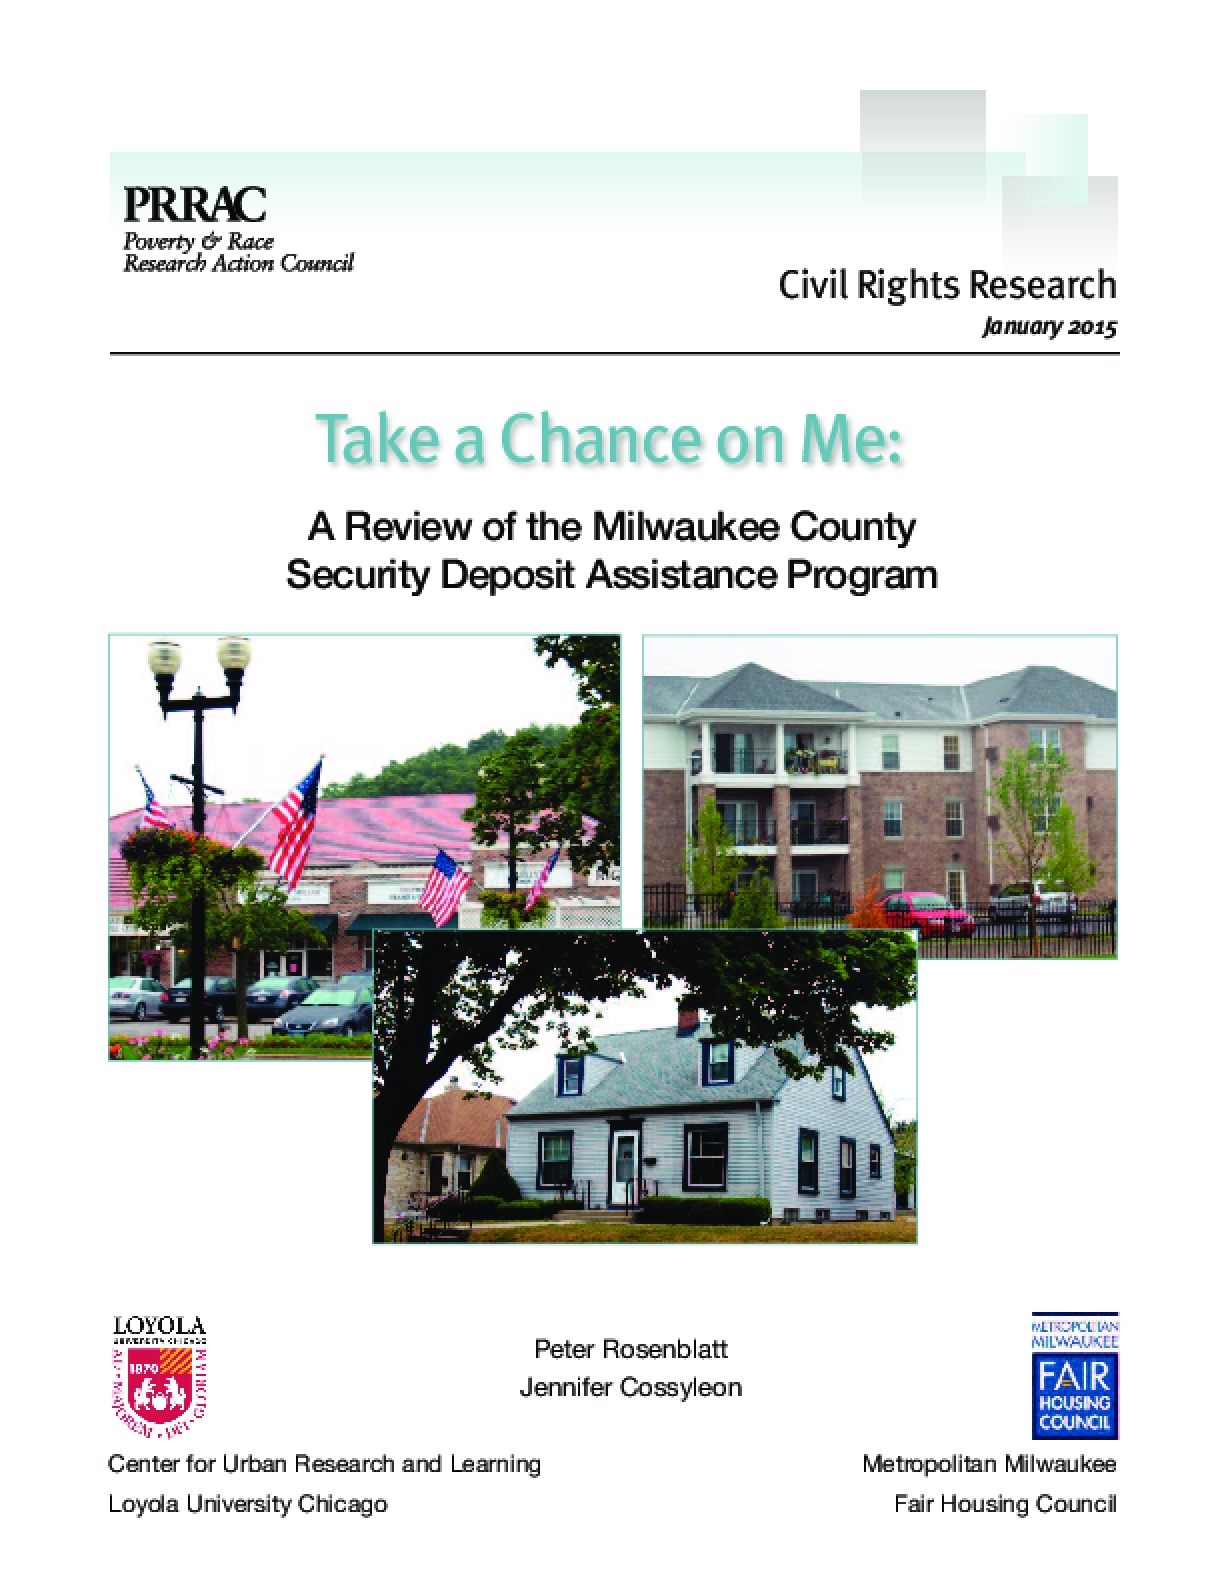 Take a Chance on Me: A Review of the Milwaukee County Security Deposit Assistance Program